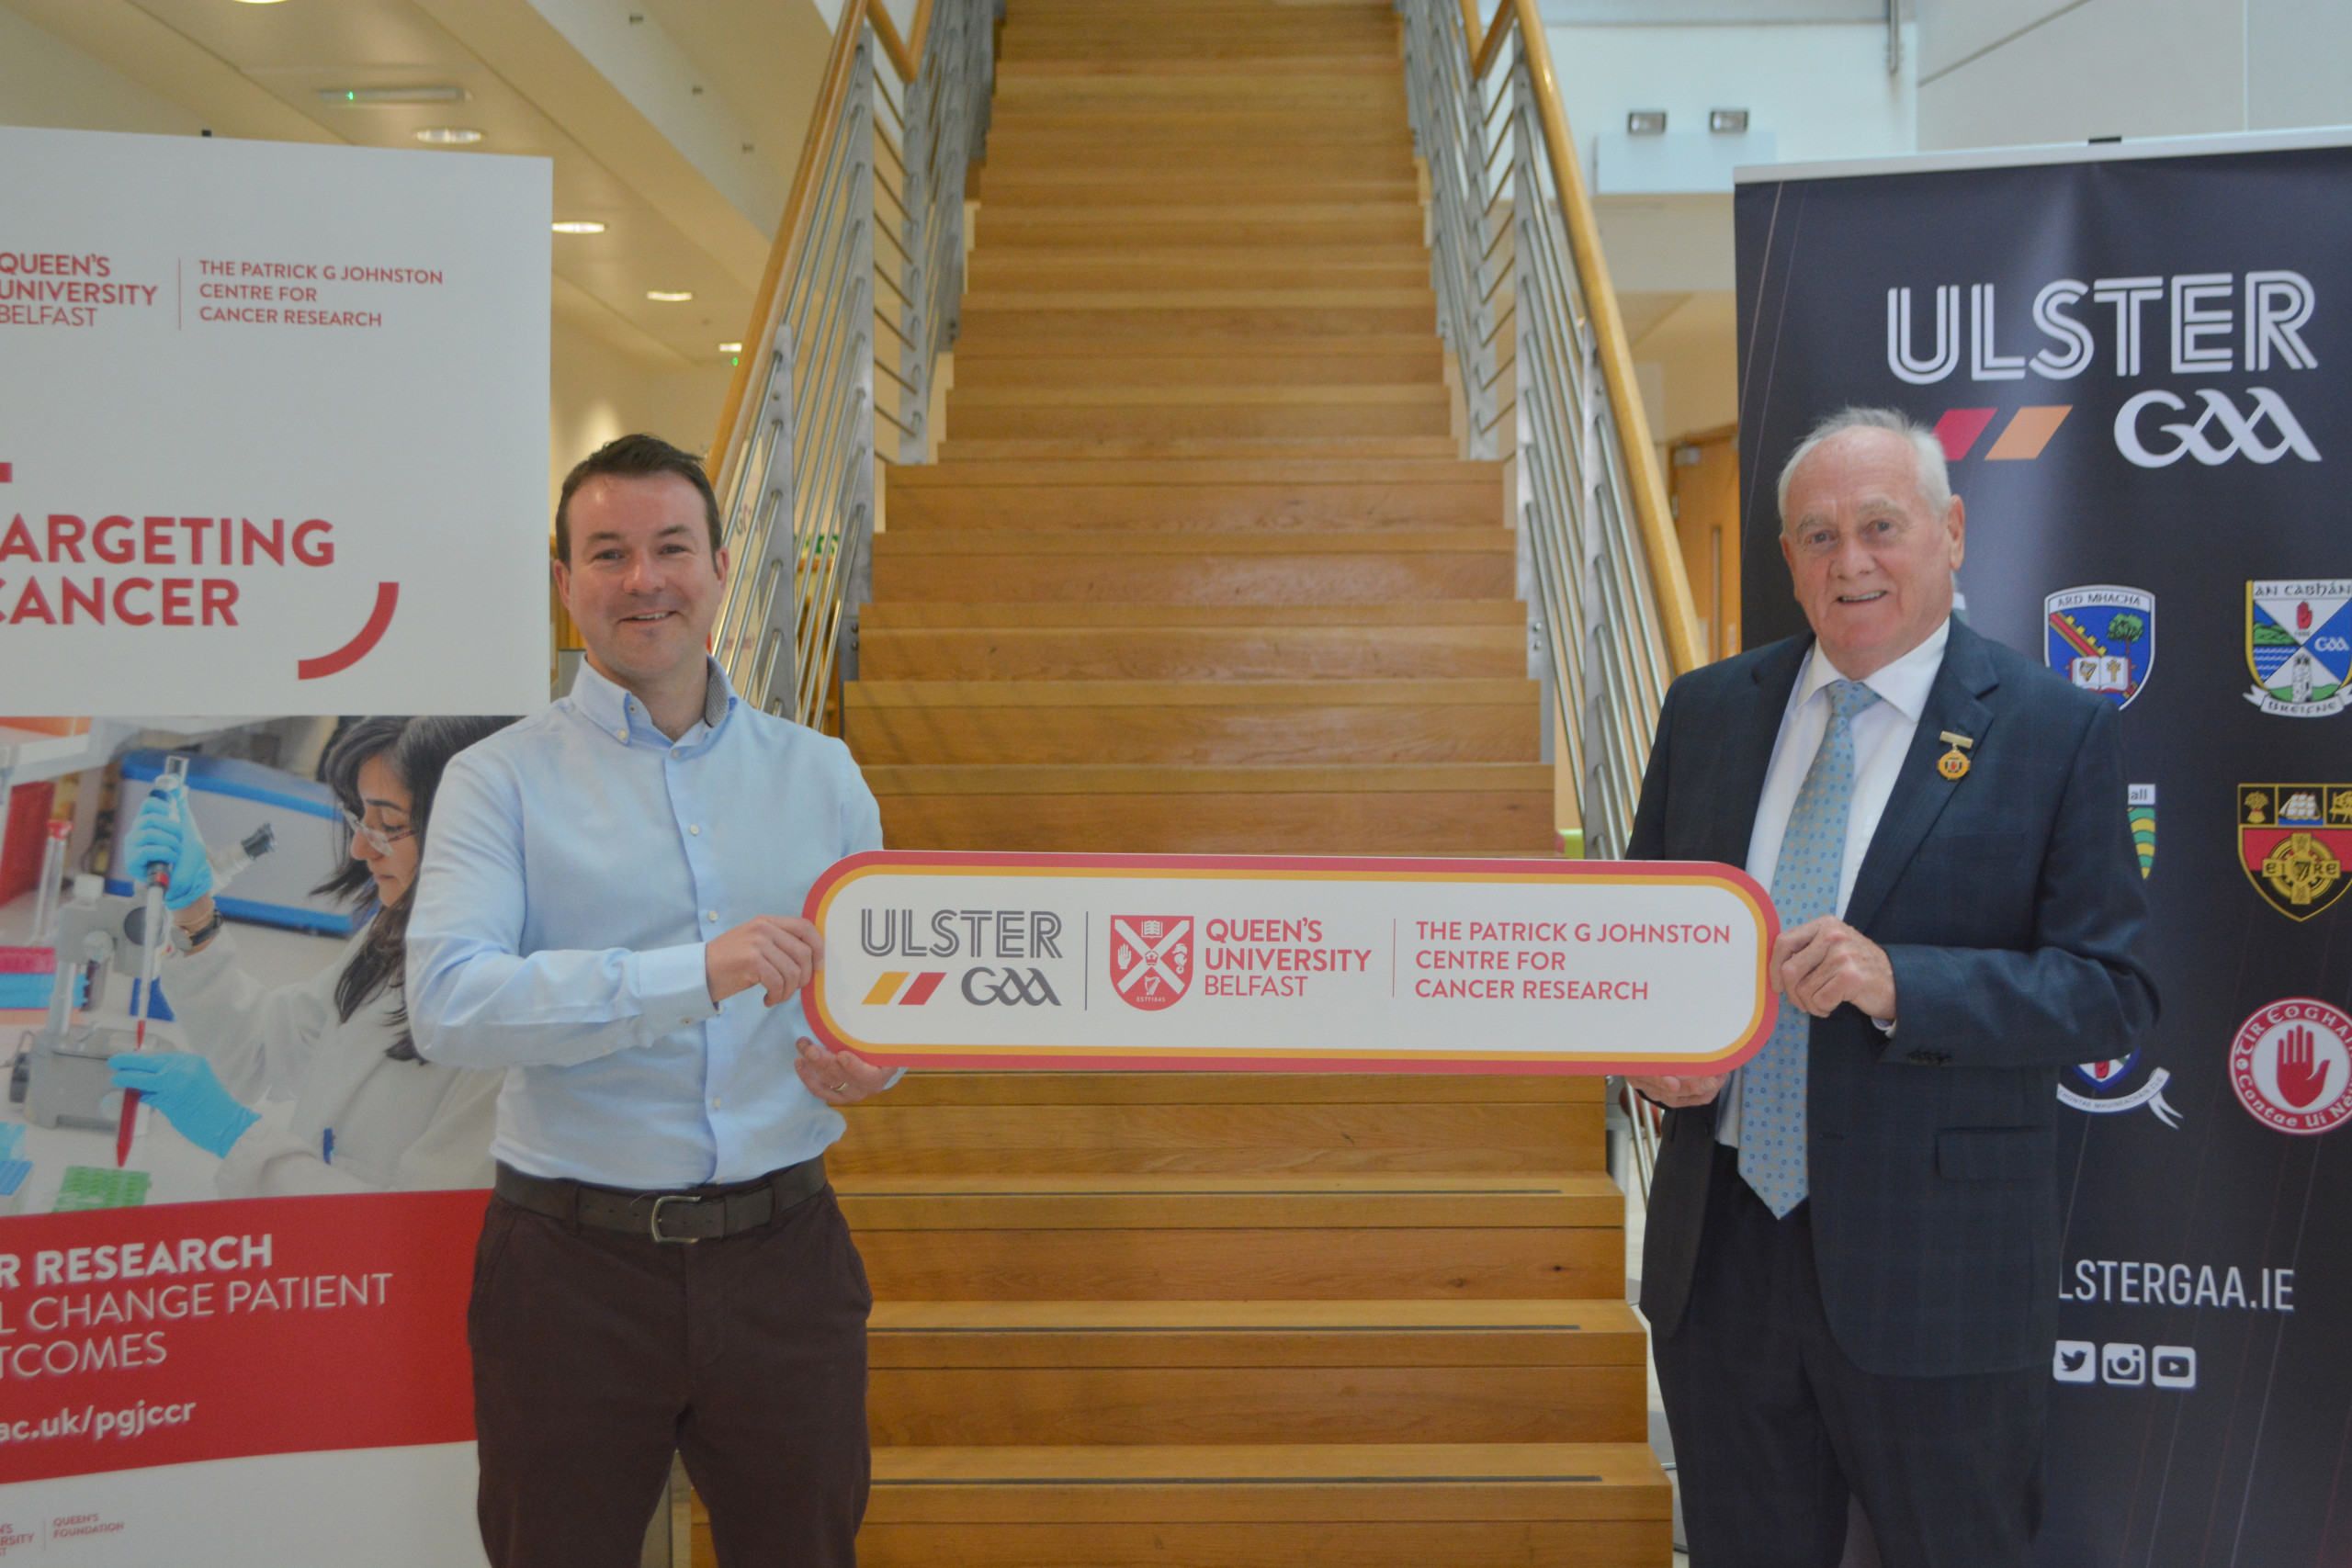 Ulster GAA supporting Prostate Cancer Research